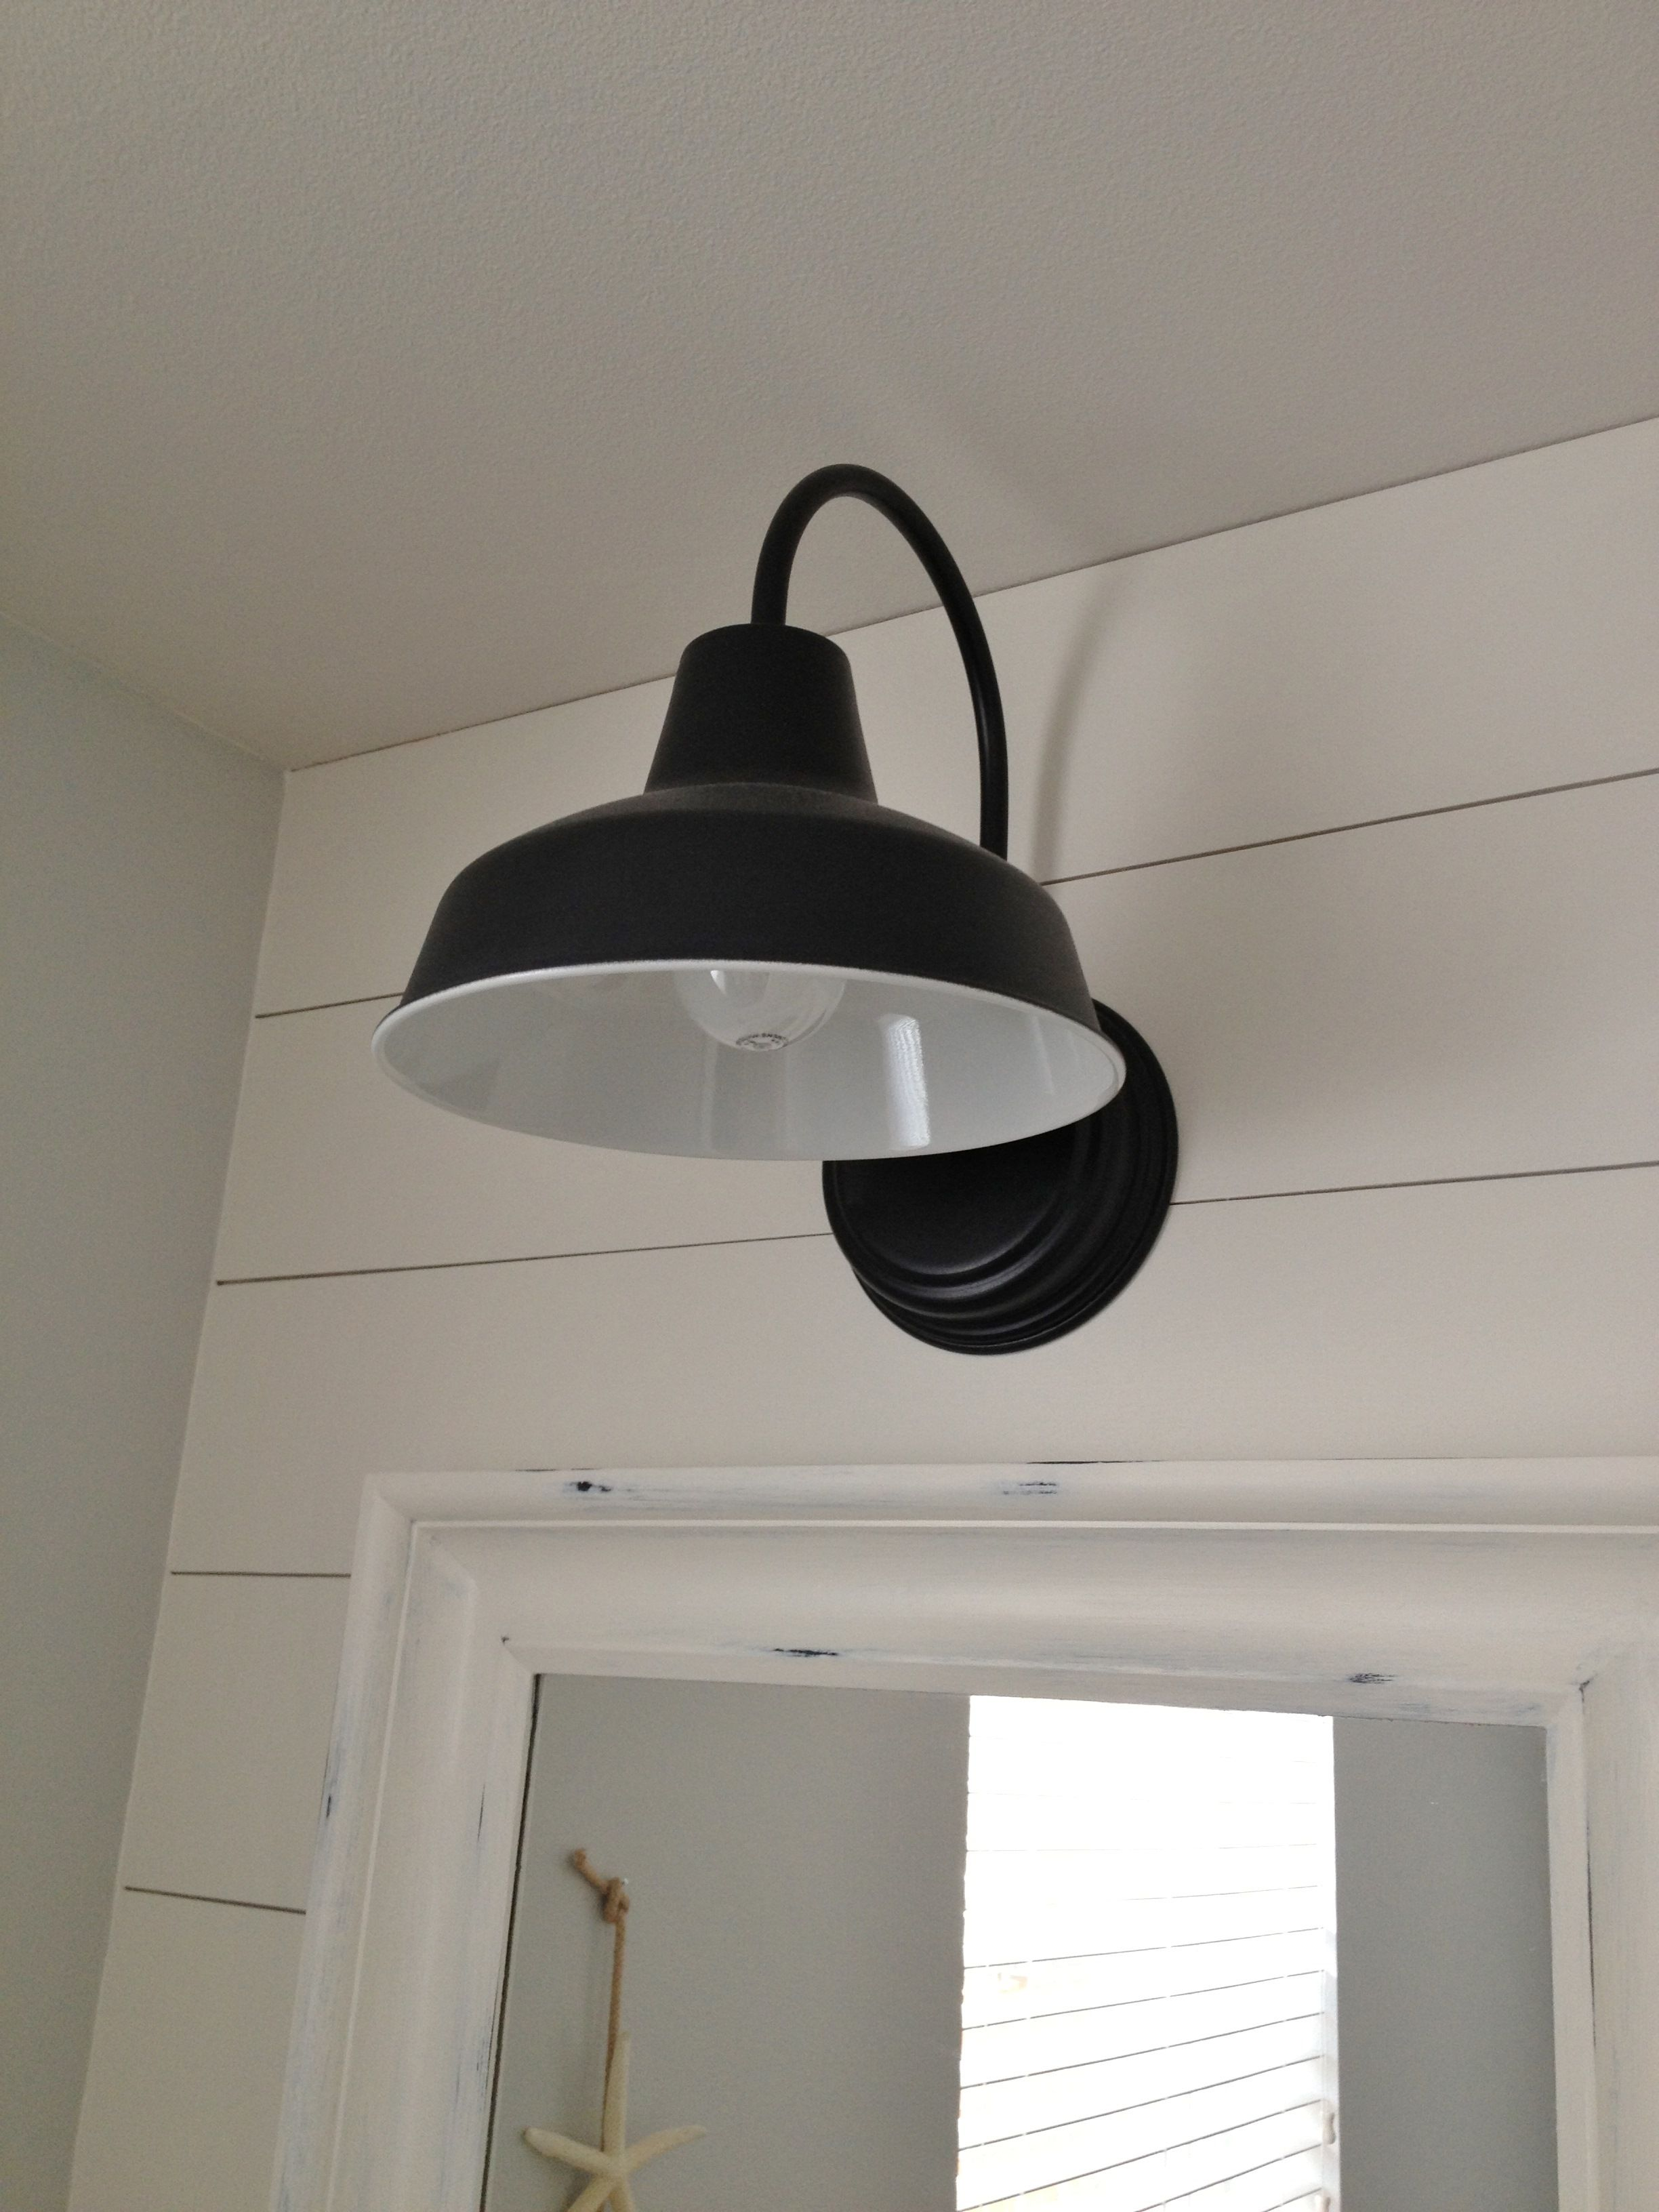 Bathroom Sconces Images barn wall sconce lends farmhouse look to powder room remake | blog